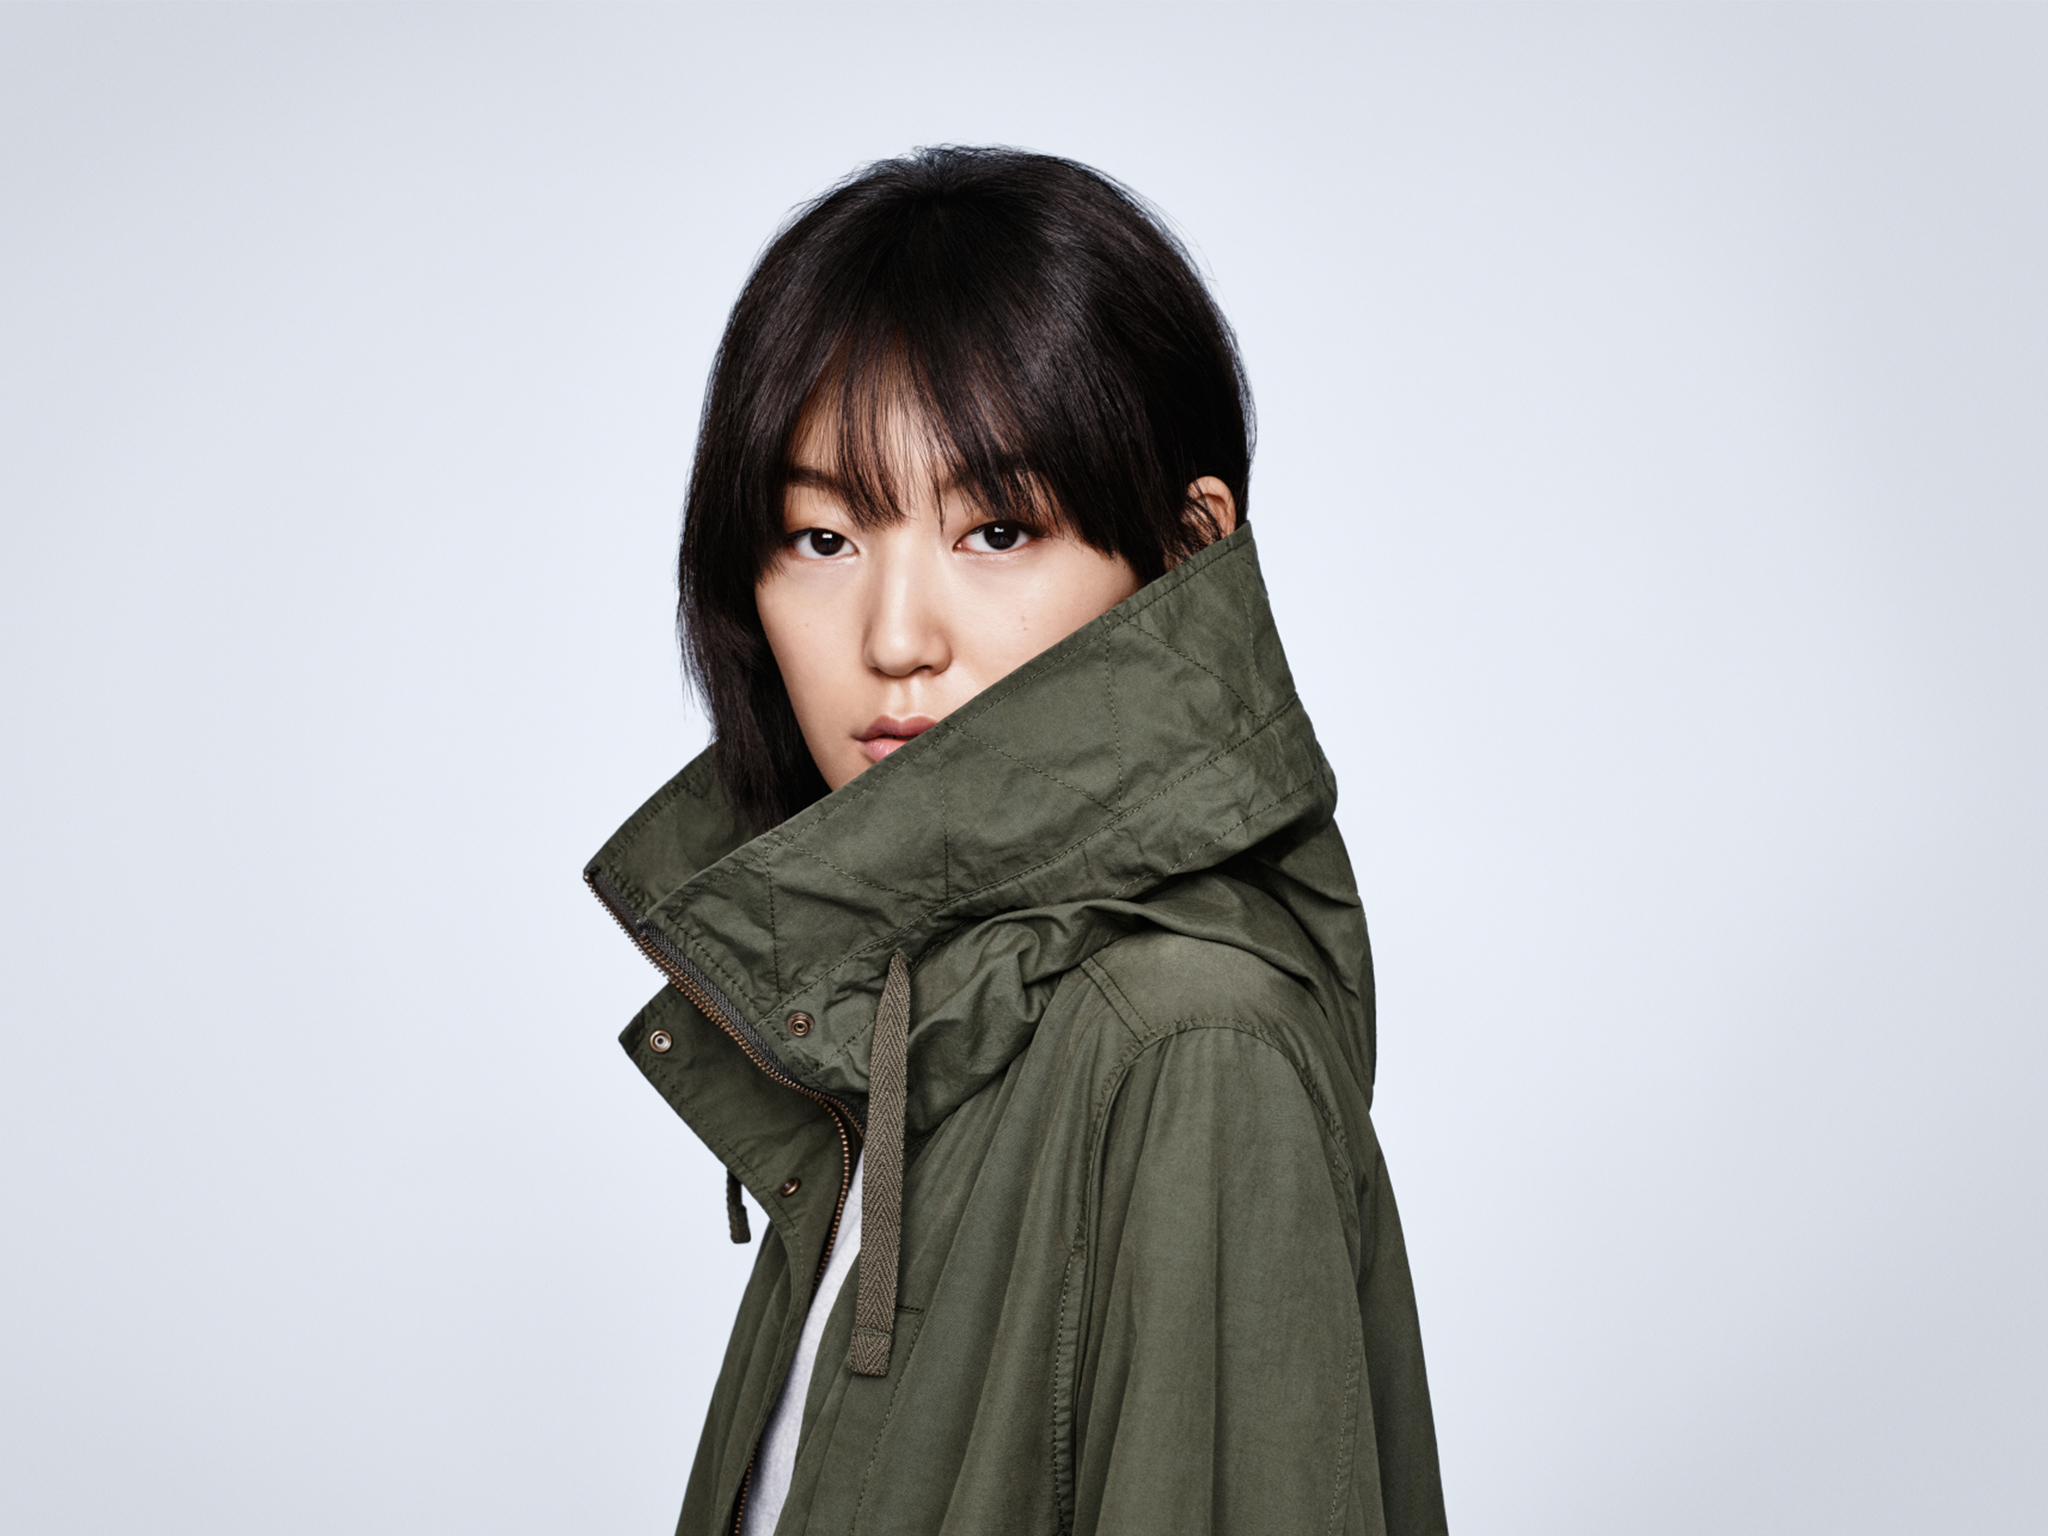 Win one of three £500 gift vouchers to spend at Uniqlo